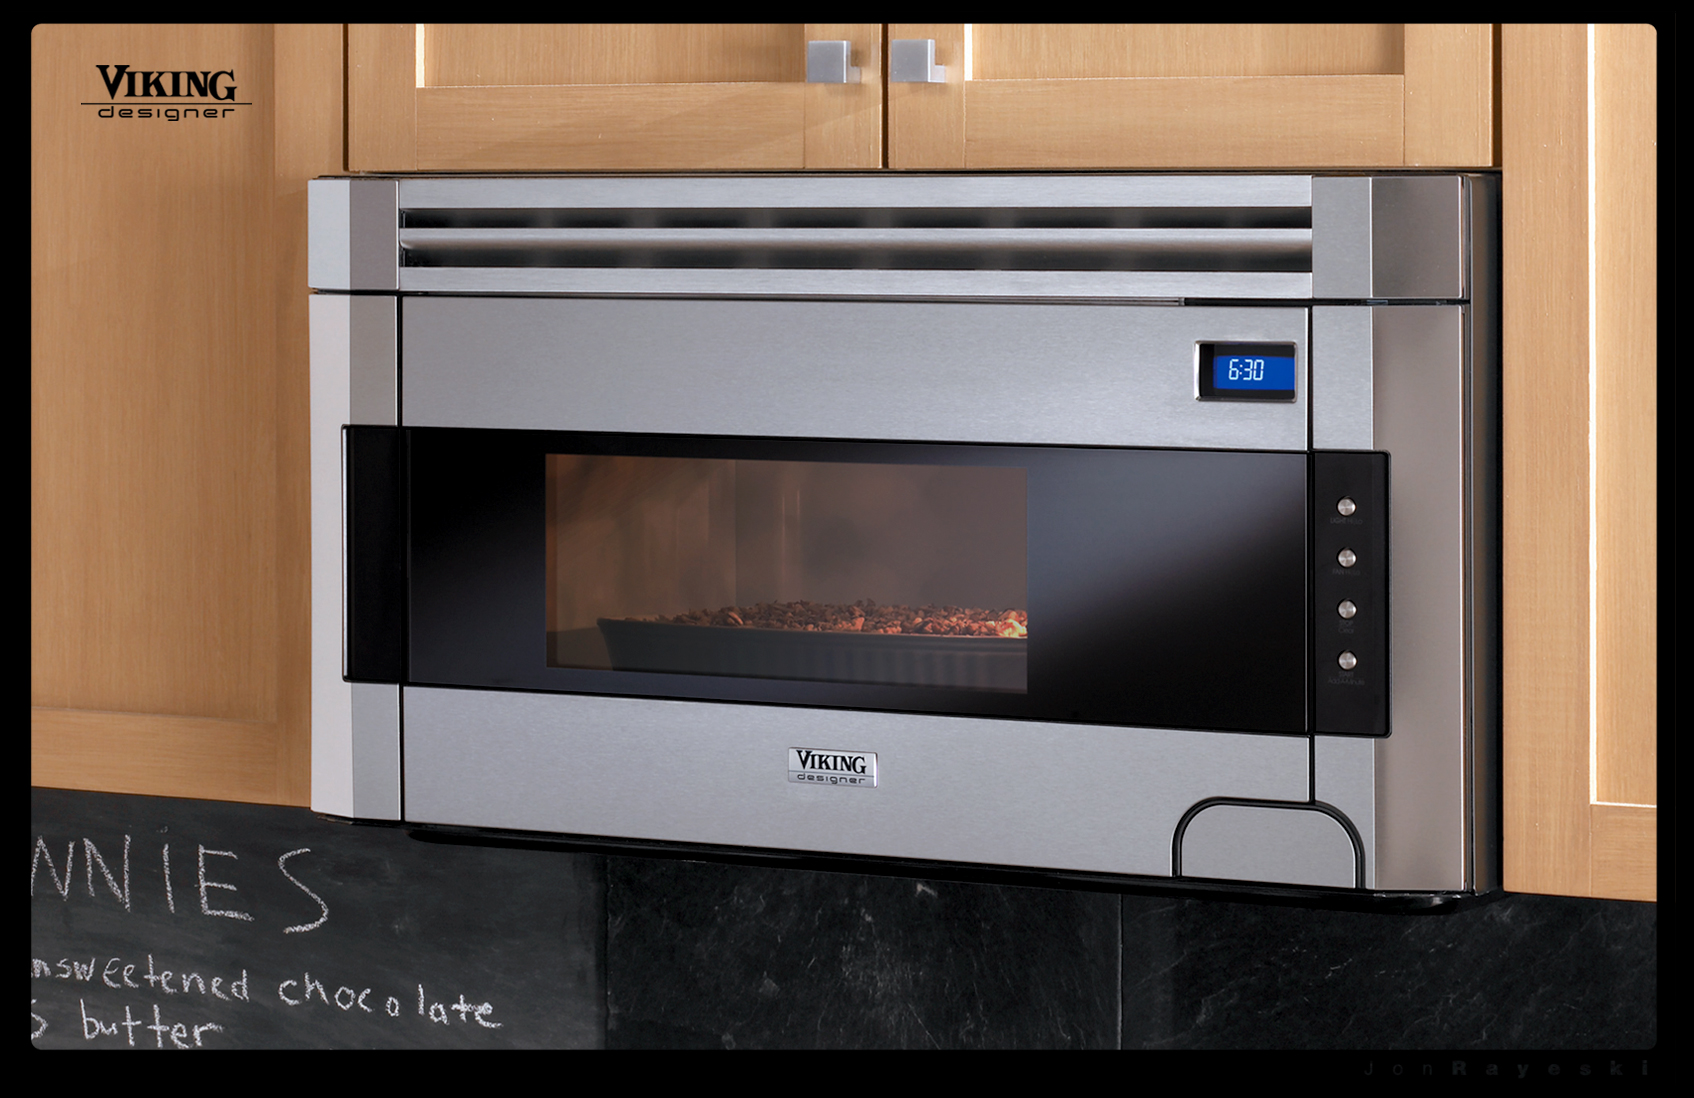 Responsibility For The New Viking Designer Series Included Design And Development Of Built In Microwave Over Range Logo Badge